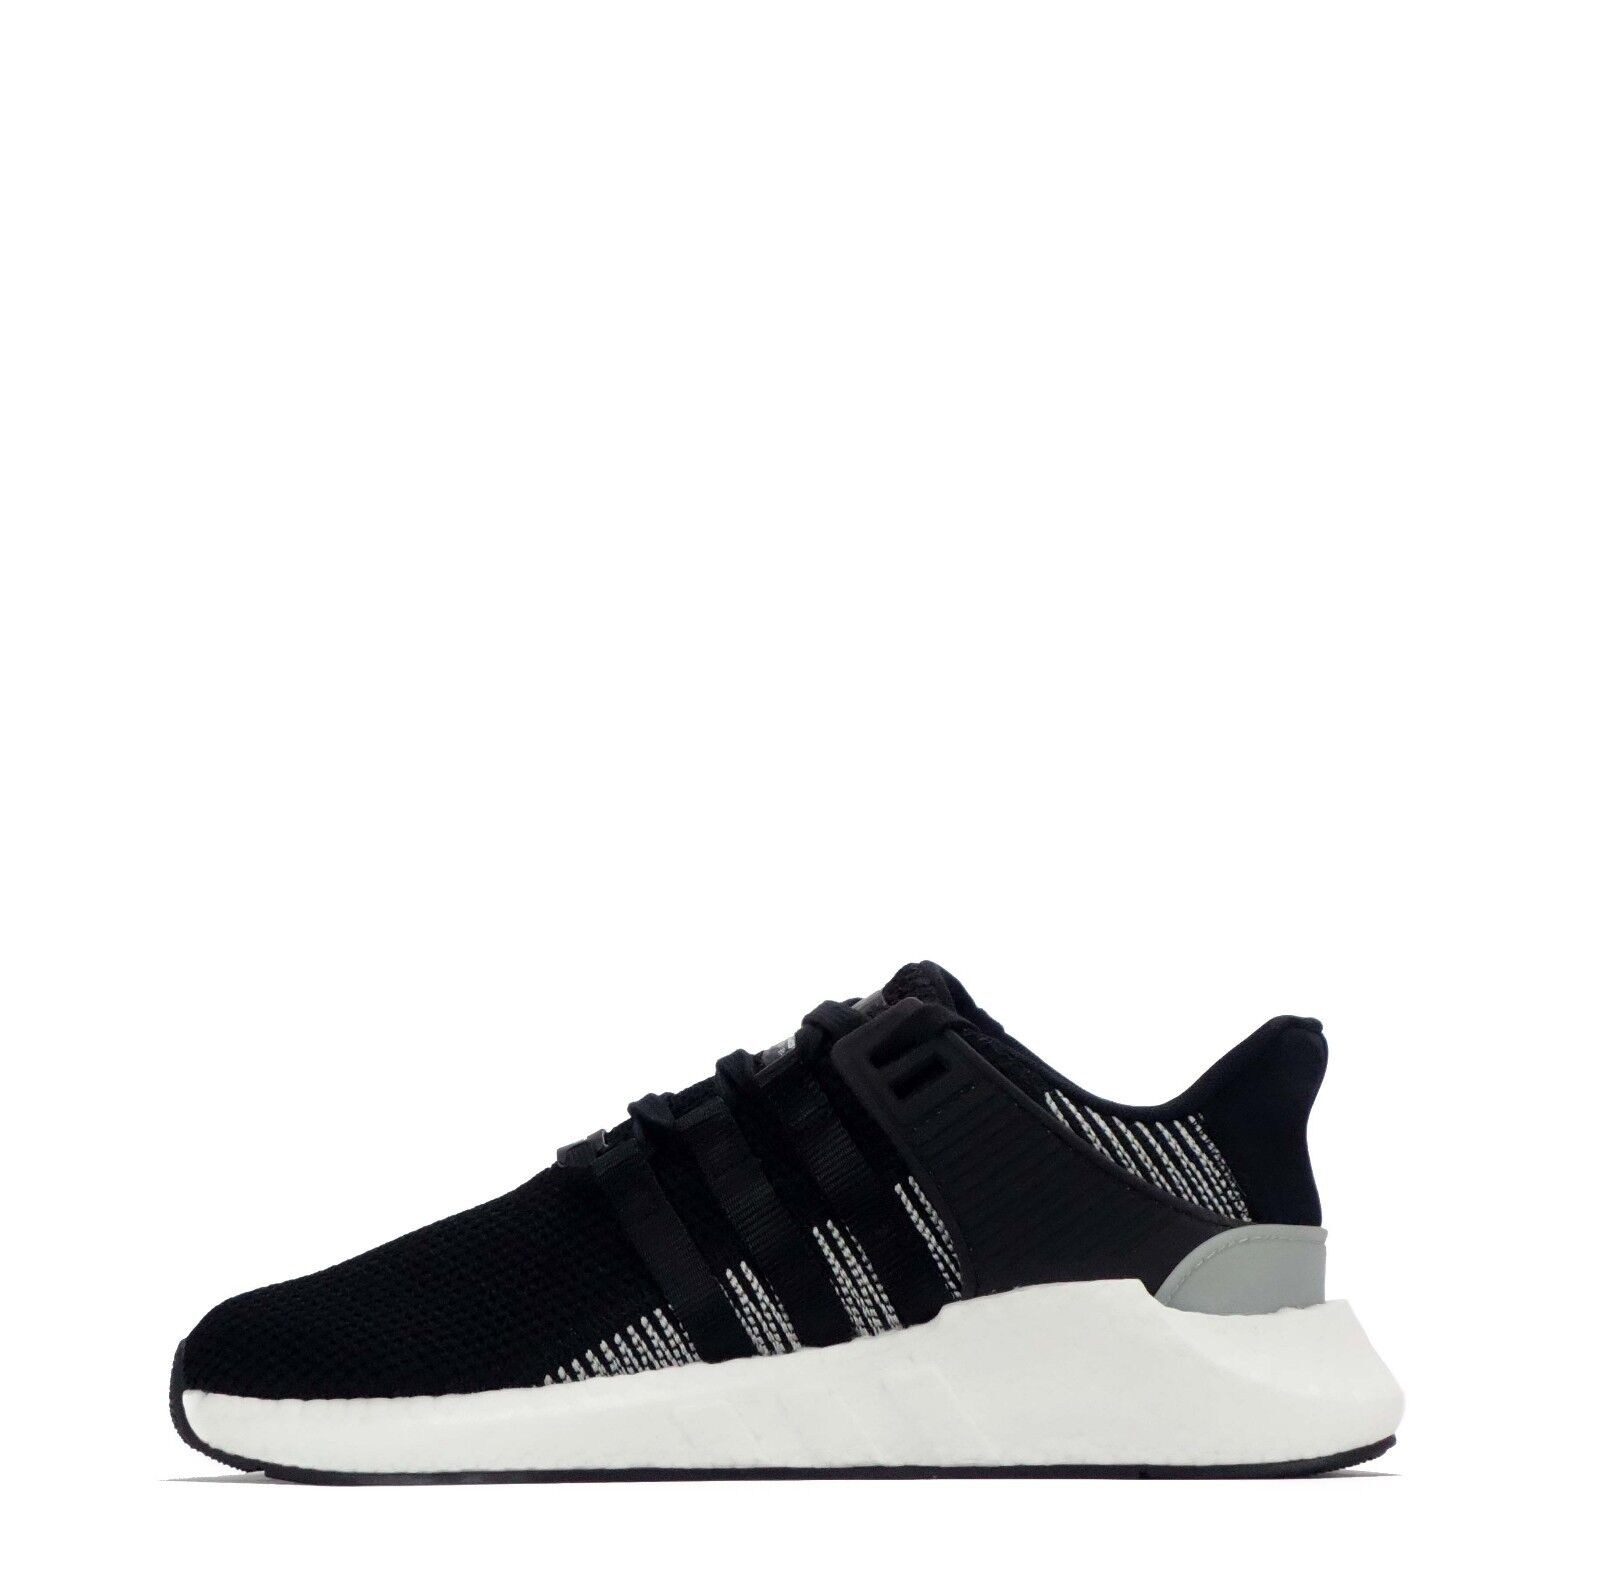 adidas Originals EQT Support 93/17 Hommes Chaussures in Noir /White